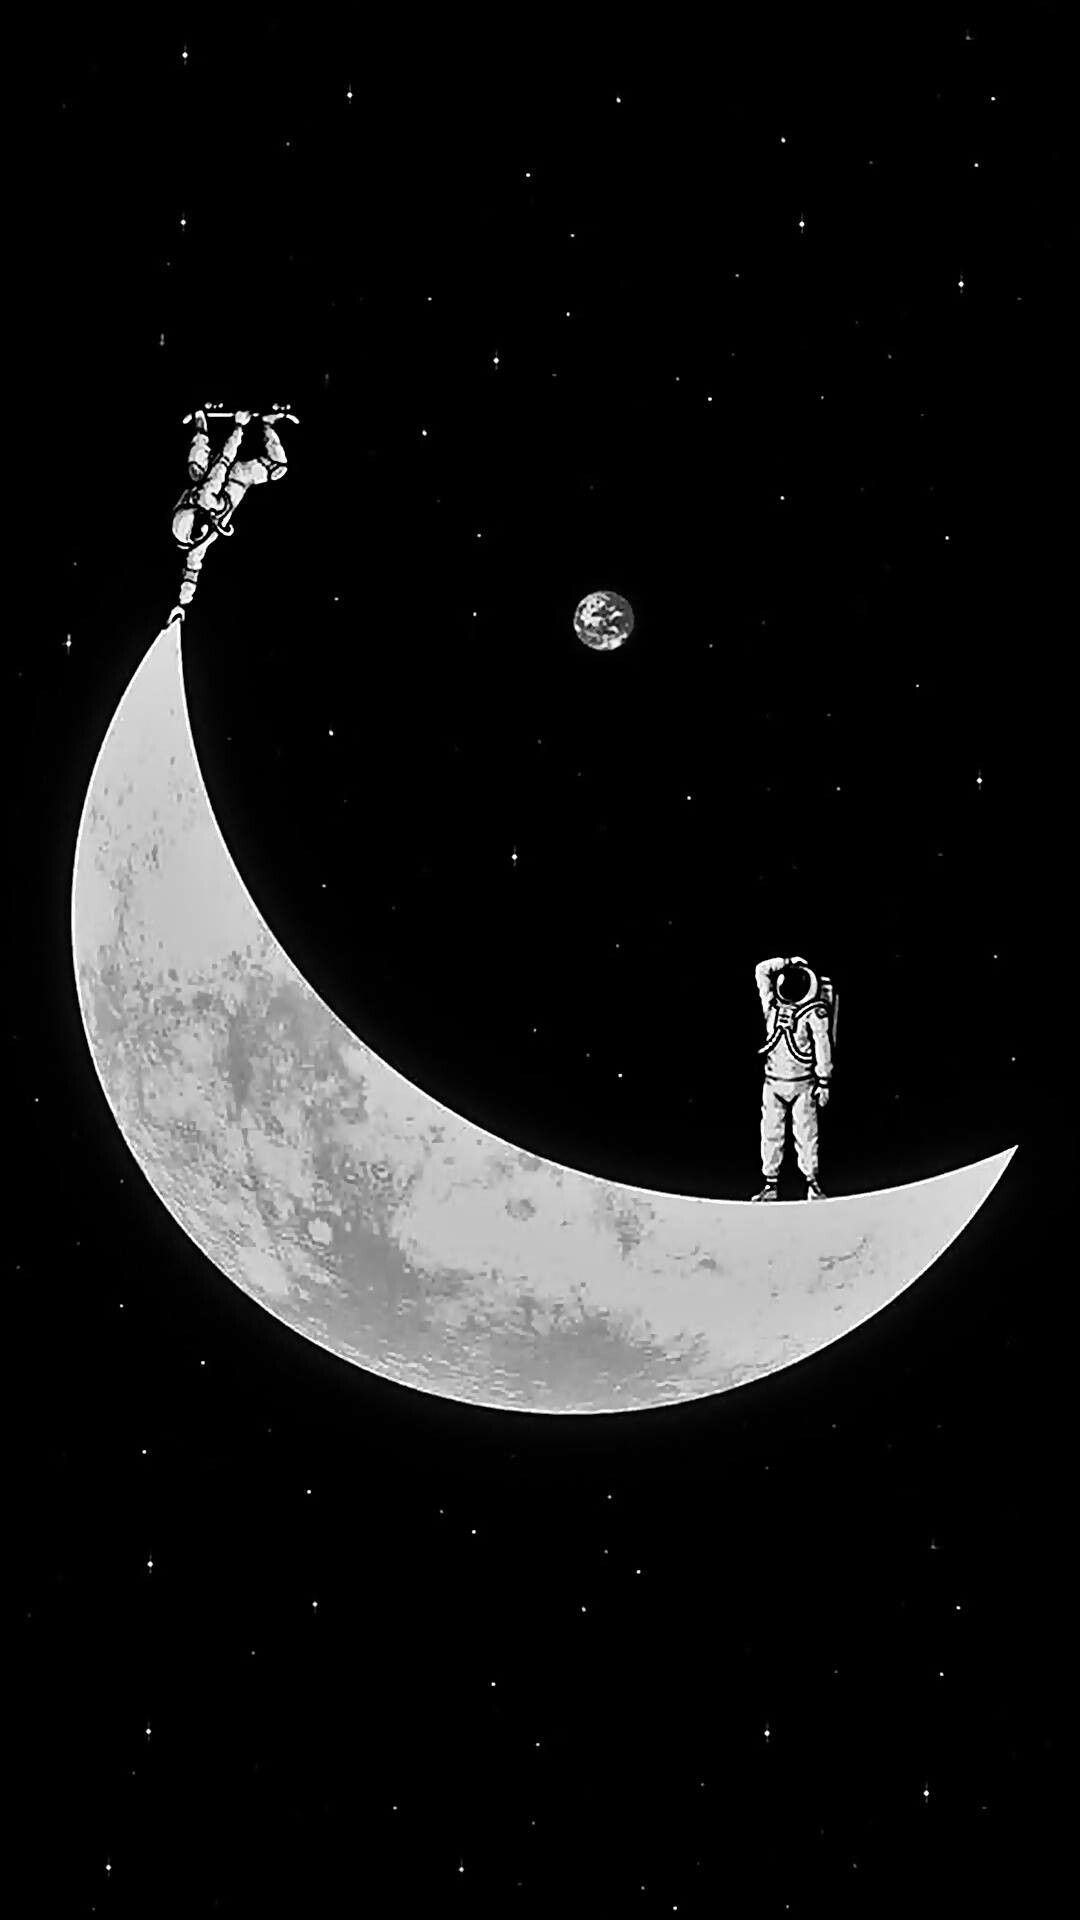 space astronaut skate moon Wallpaper space Android wallpaper 1080x1920